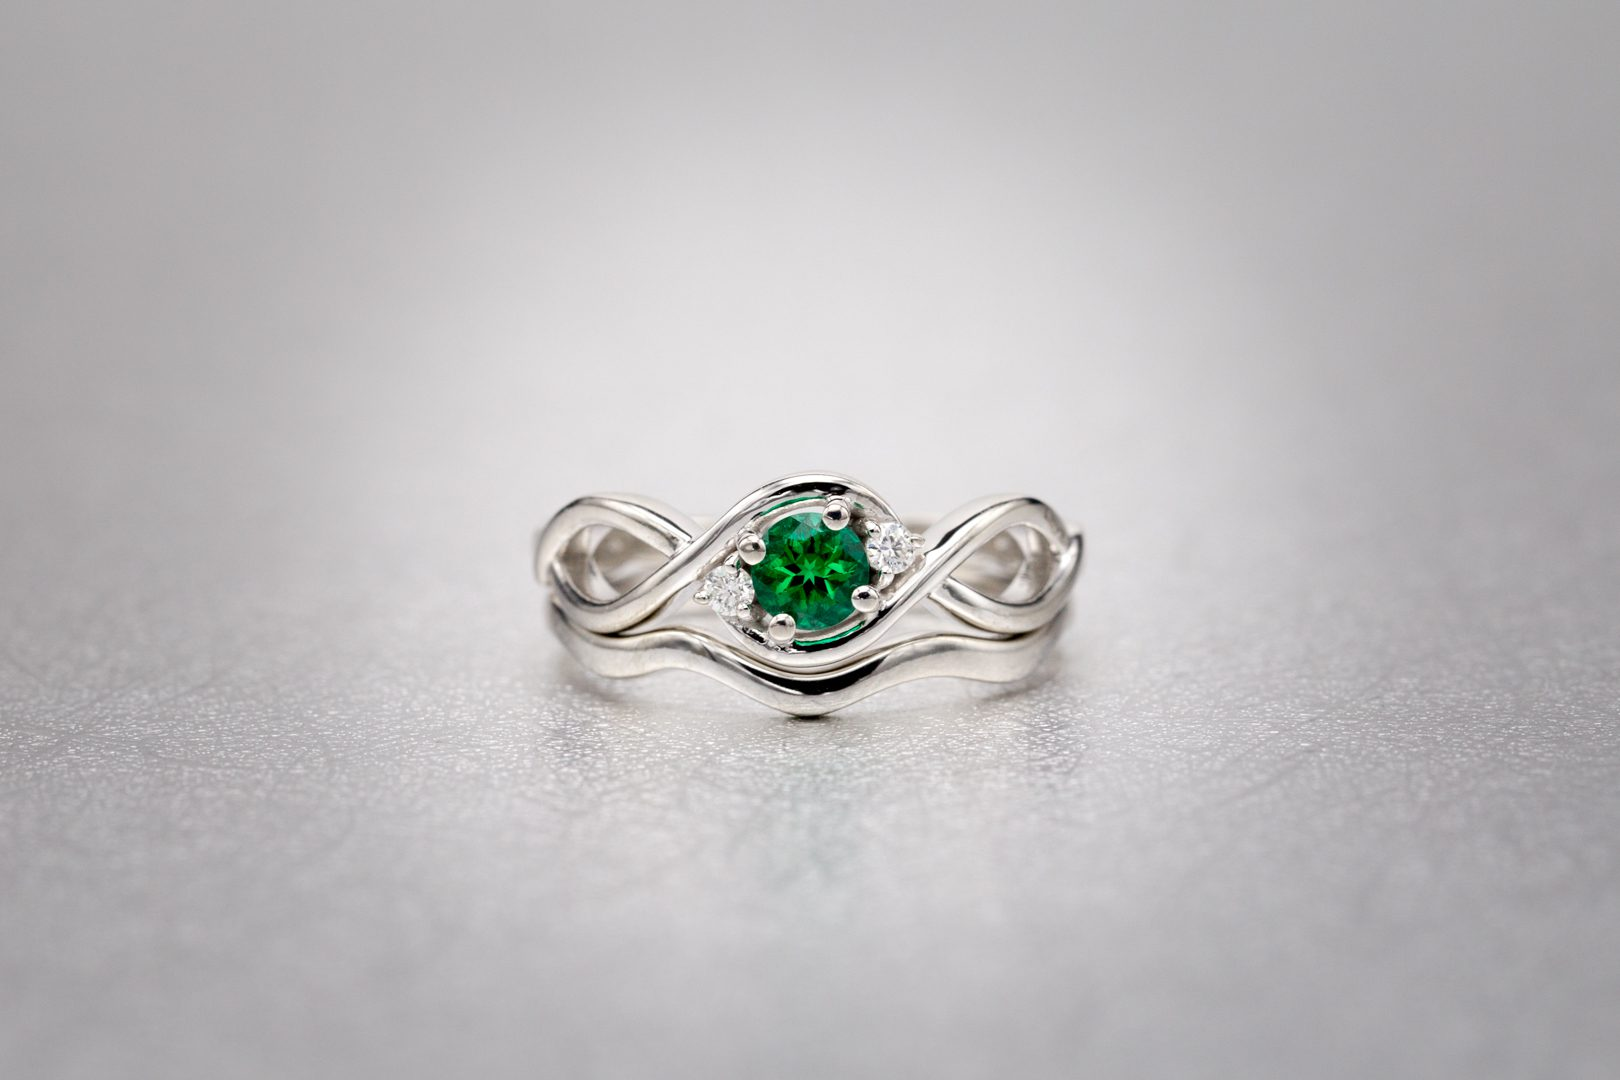 emerald rings differences between the real and synthetic. Brilliant-cut Lab-created Emerald In A Ring. © CustomMade. Used With Permission. Rings Differences Between The Real And Synthetic